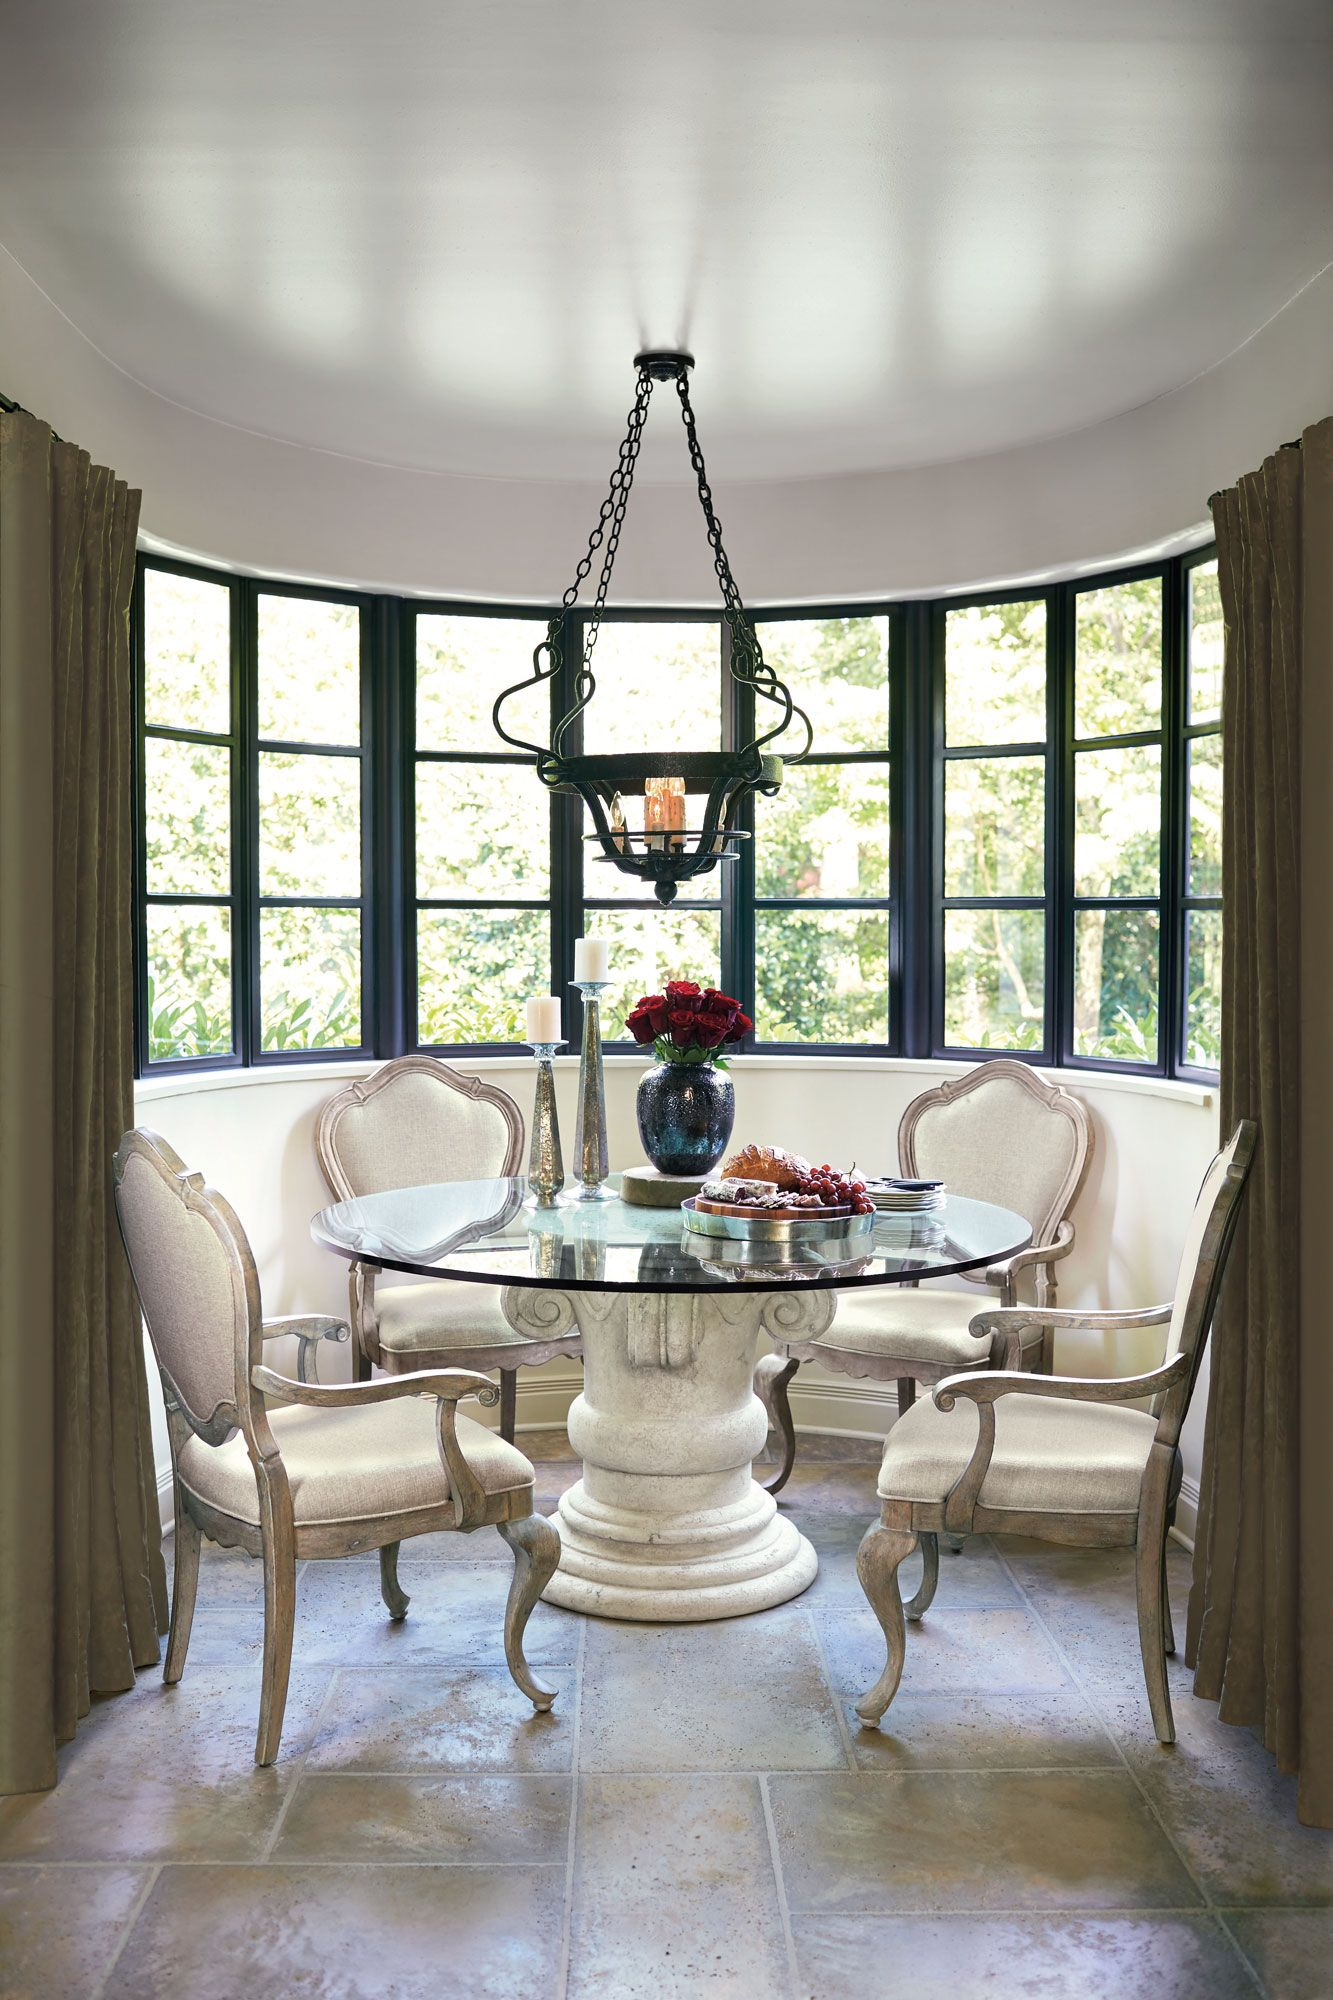 Campania Stone Pedestal Dining Table And Chairs Chairs Design Home Decor Beautiful Dining Rooms Luxury Dining Tables Dining Room Sets